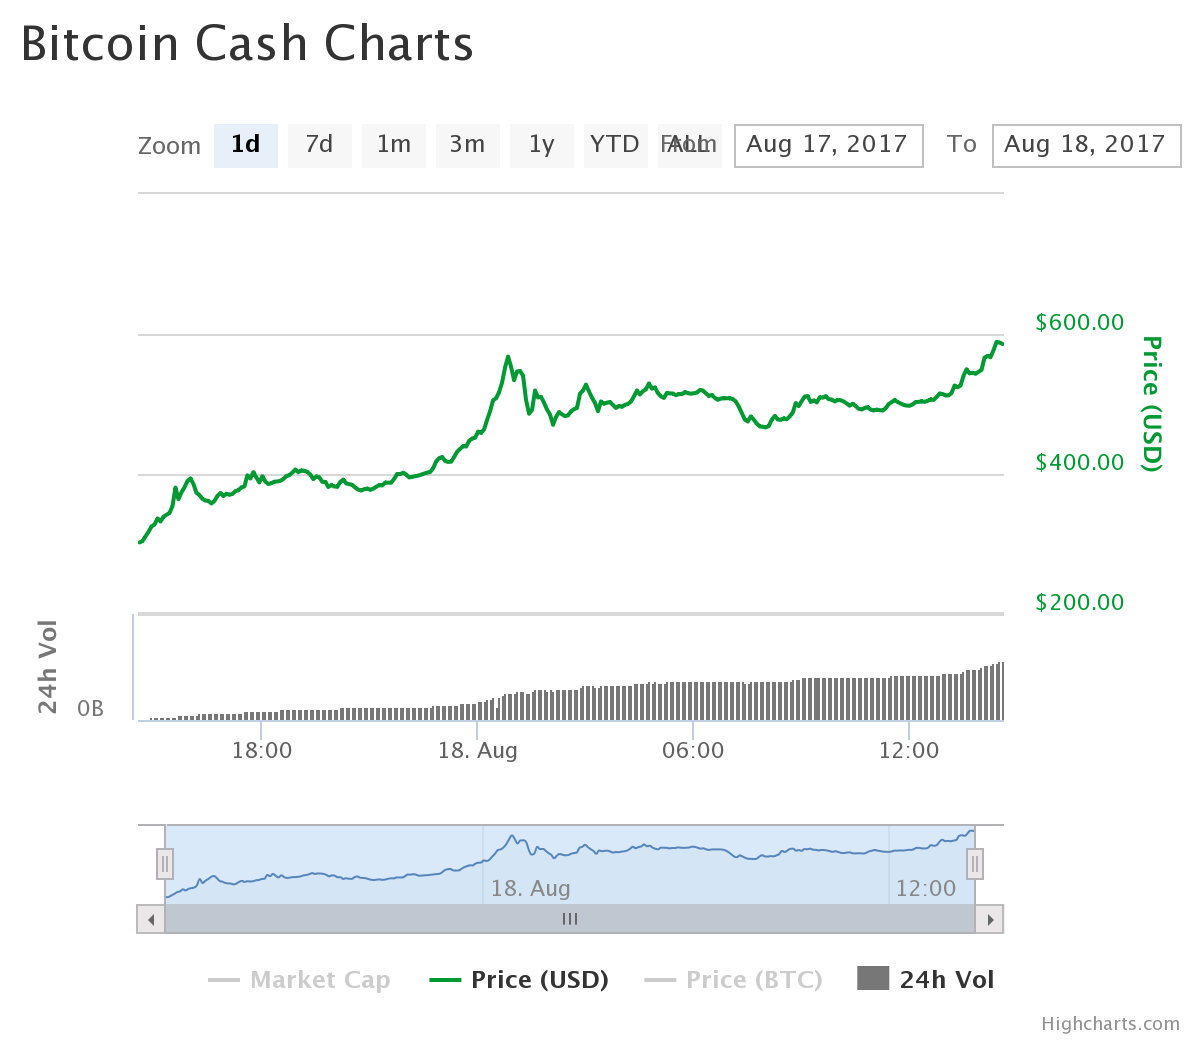 'Bitcoin cash' soars to record high above $900 as 'mining' profits jump